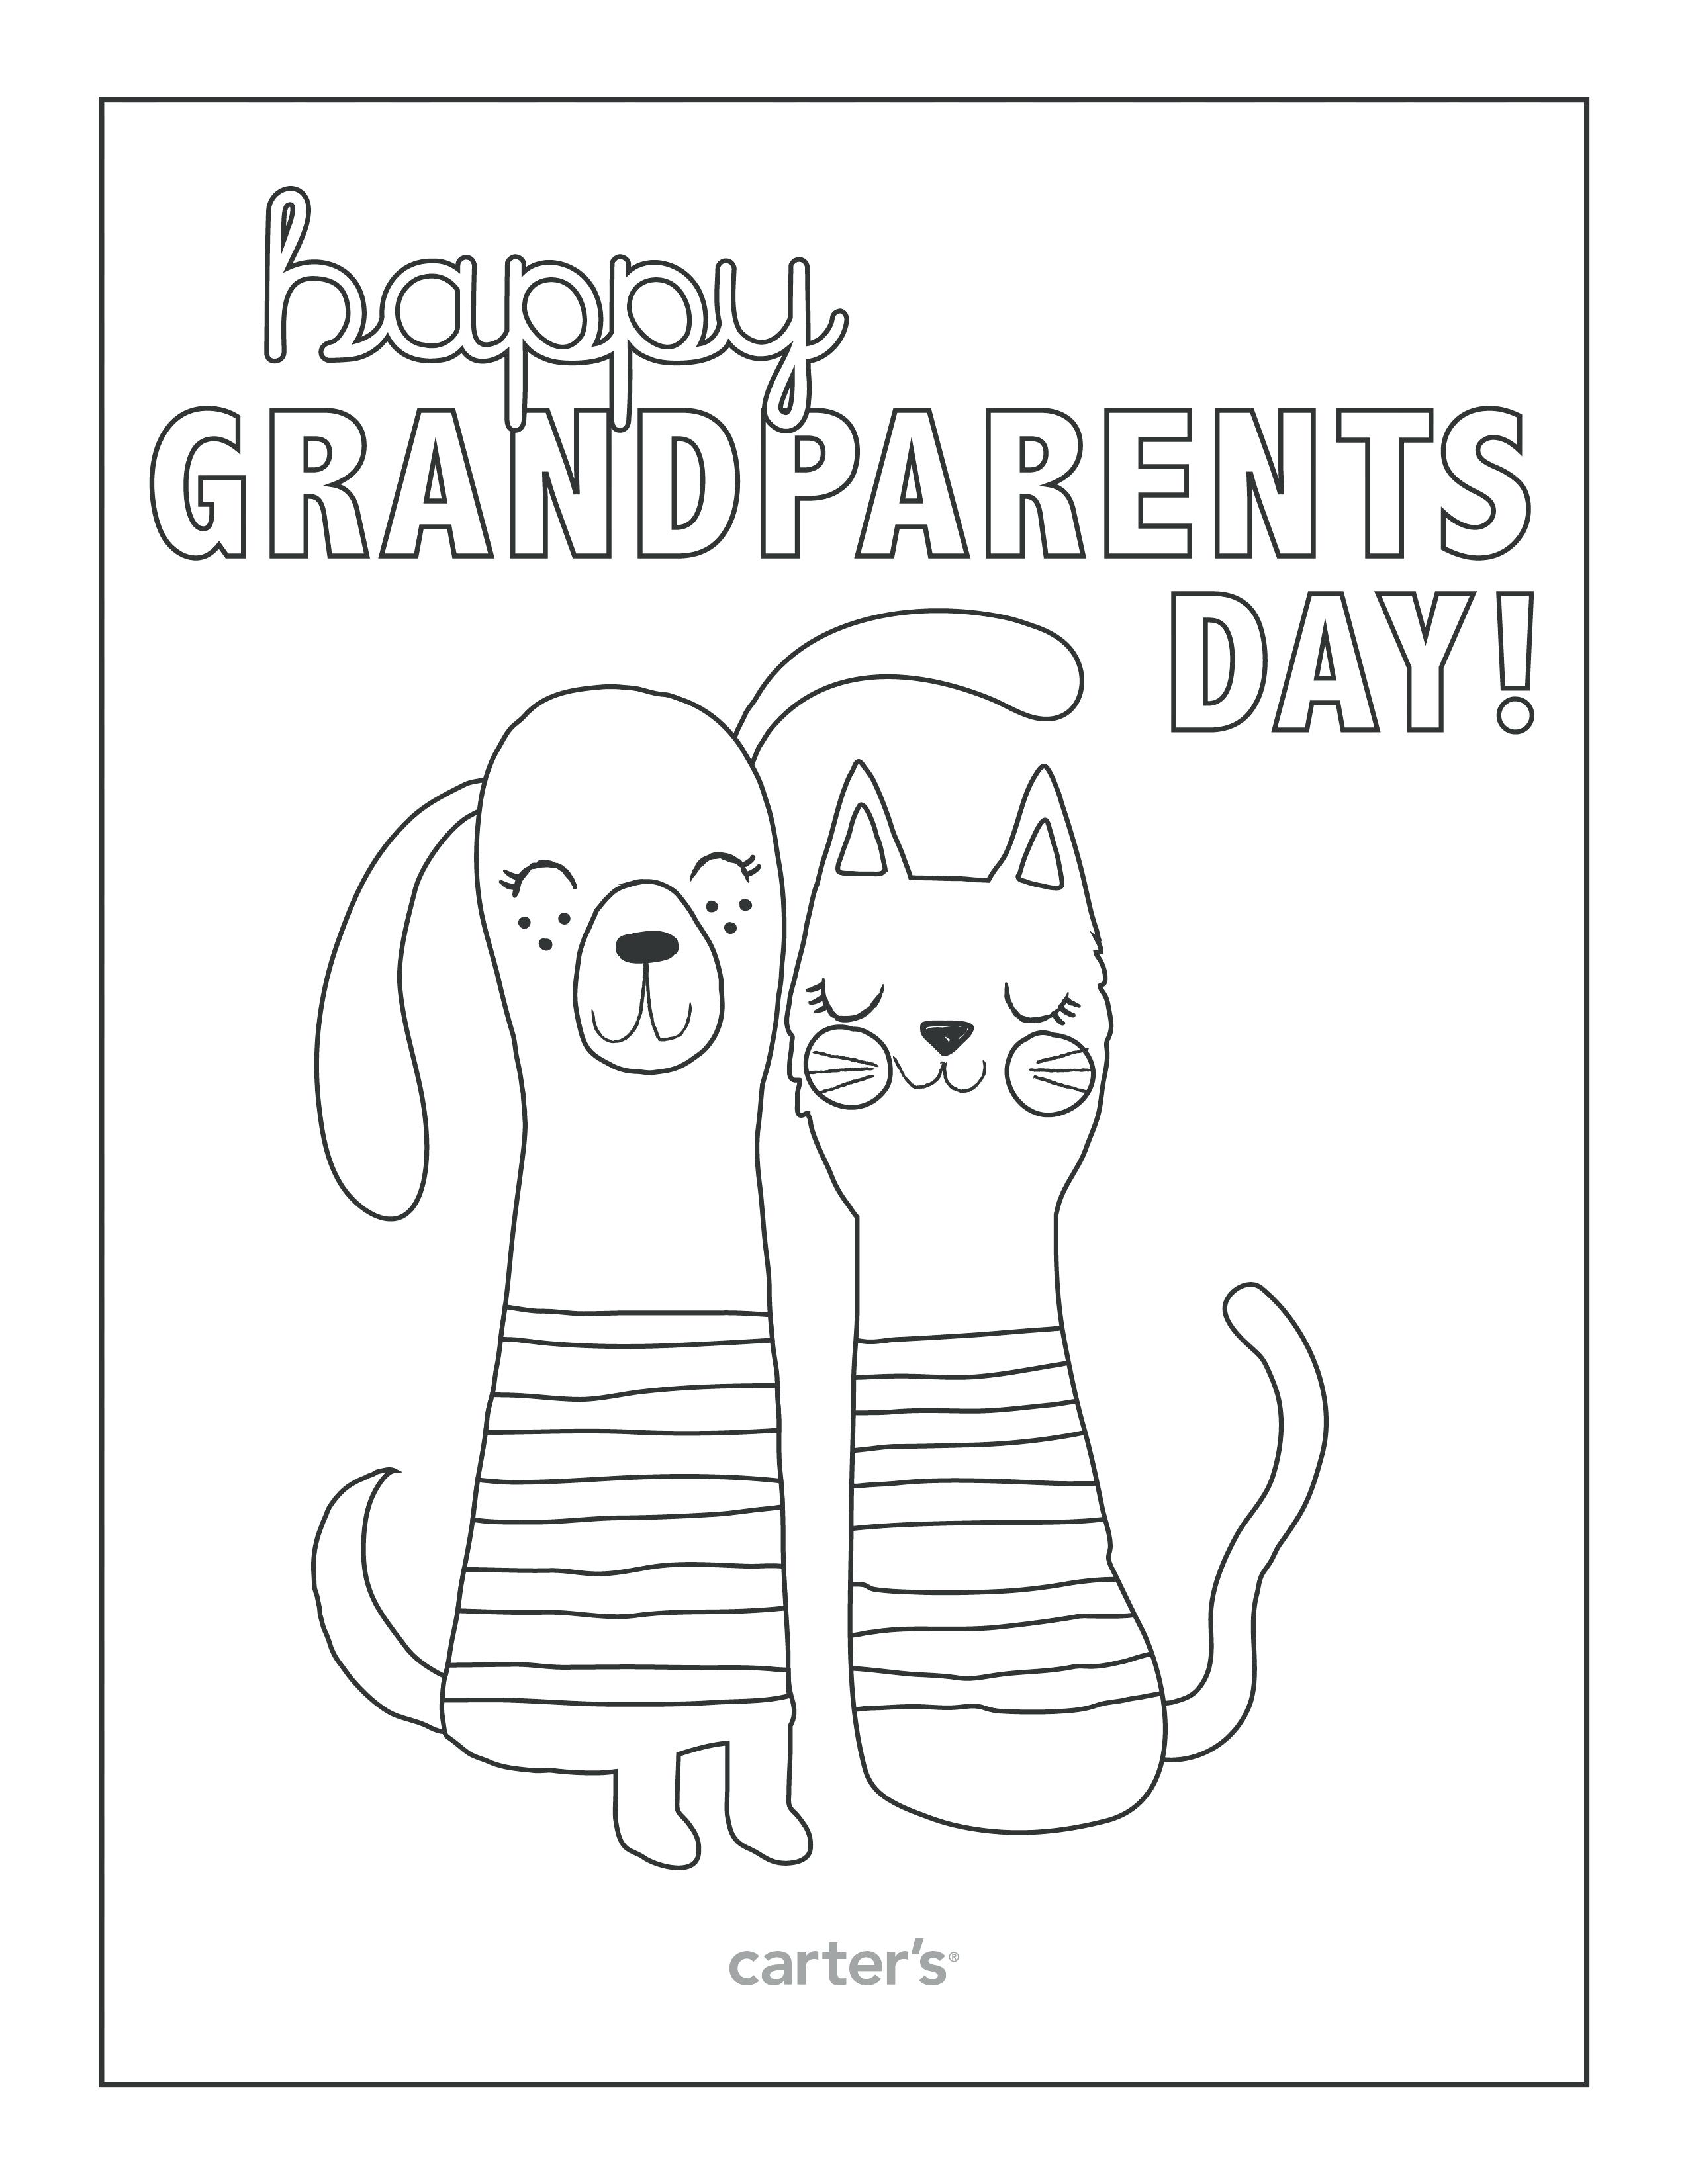 D Day Coloring Pages At Getcolorings